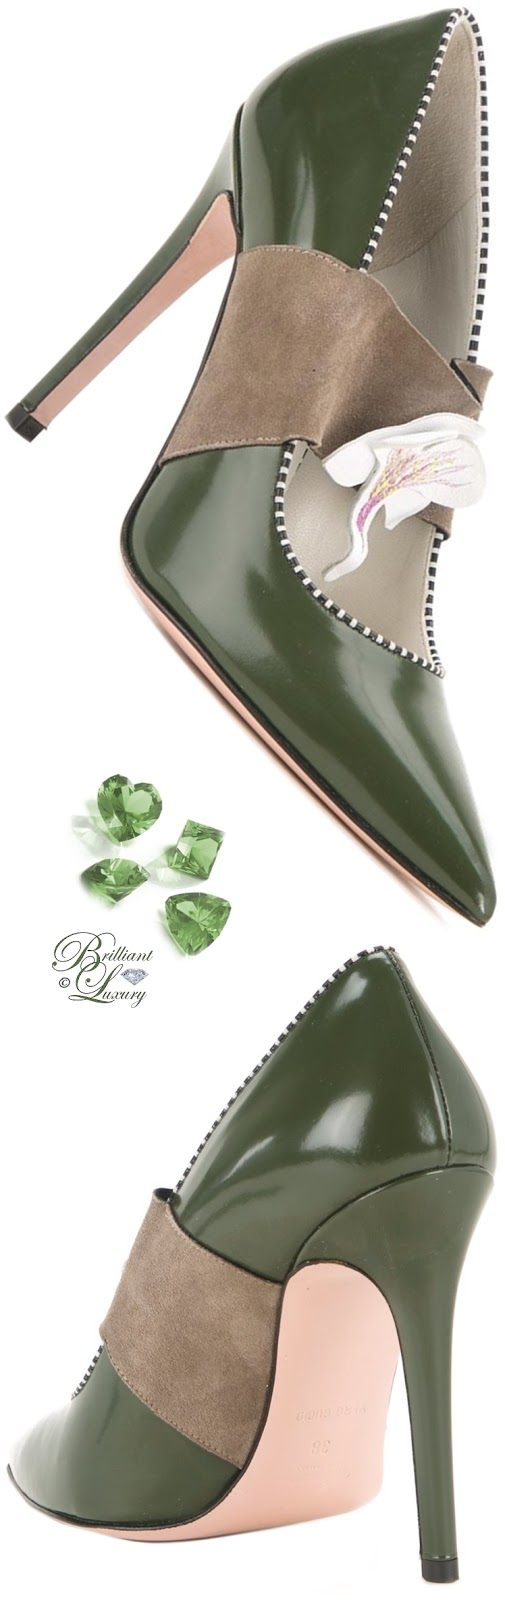 Arnaa Green Tamy Pumps #shoes #pantone #brilliantluxury